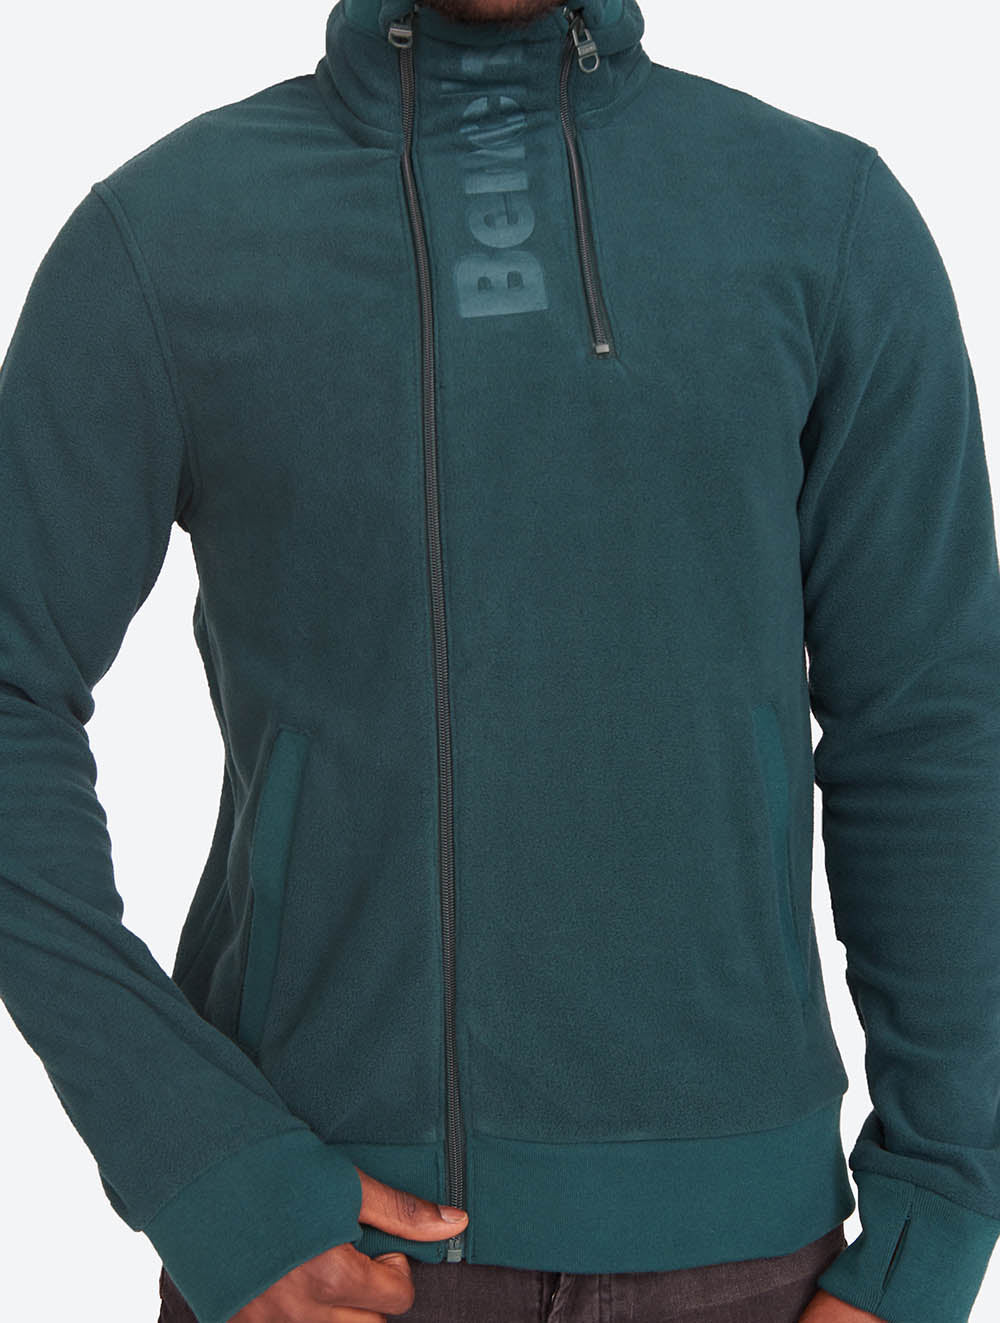 Asymmetrical Double-zip Fleece